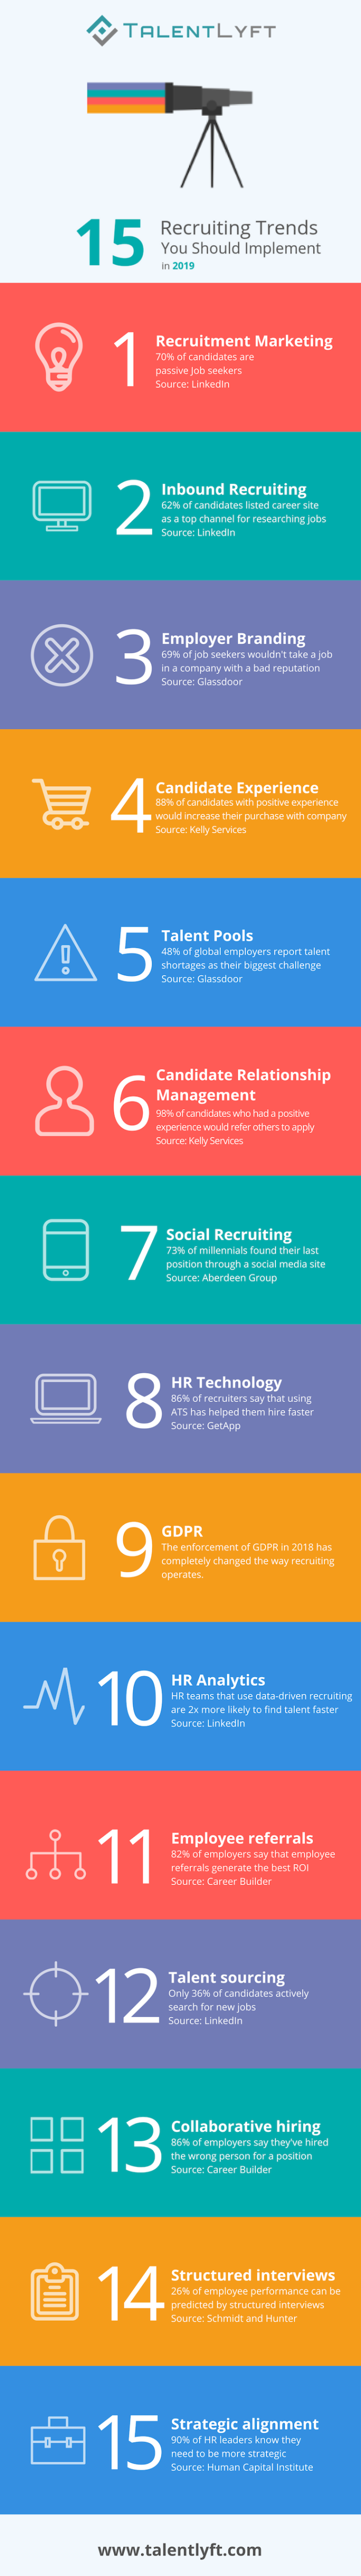 talent Lyft infographic